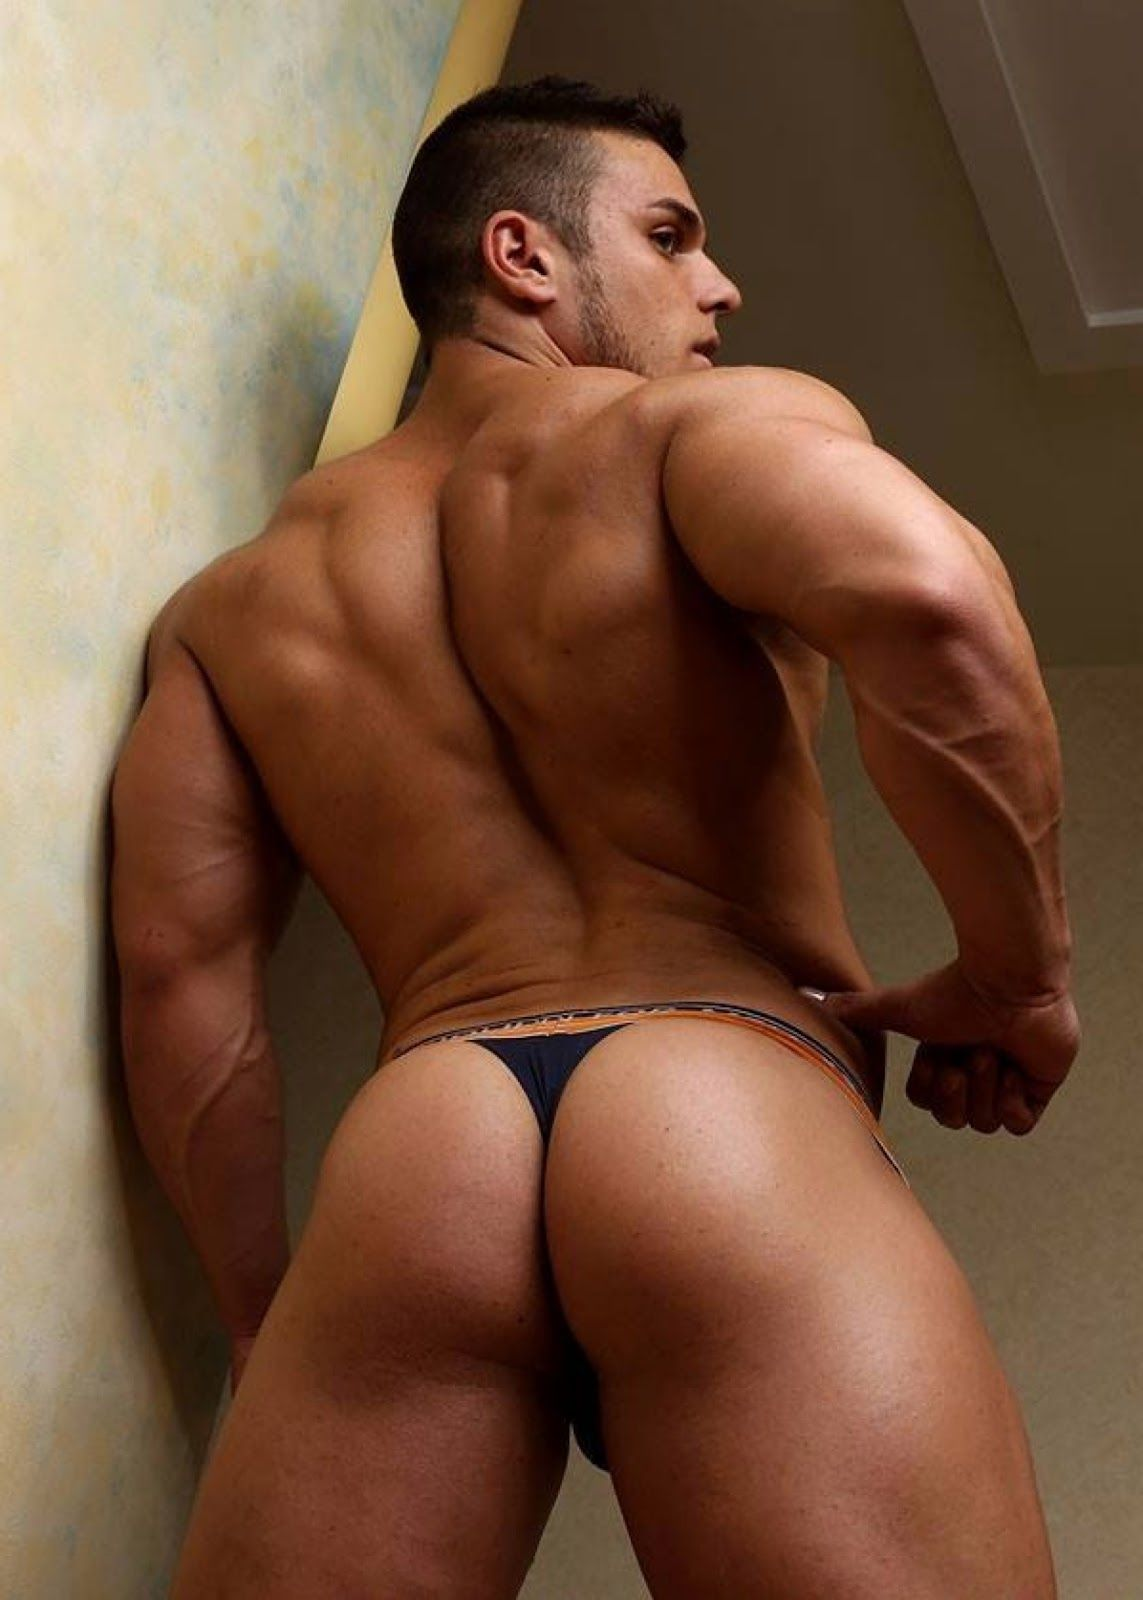 was-licking-nude-jock-guys